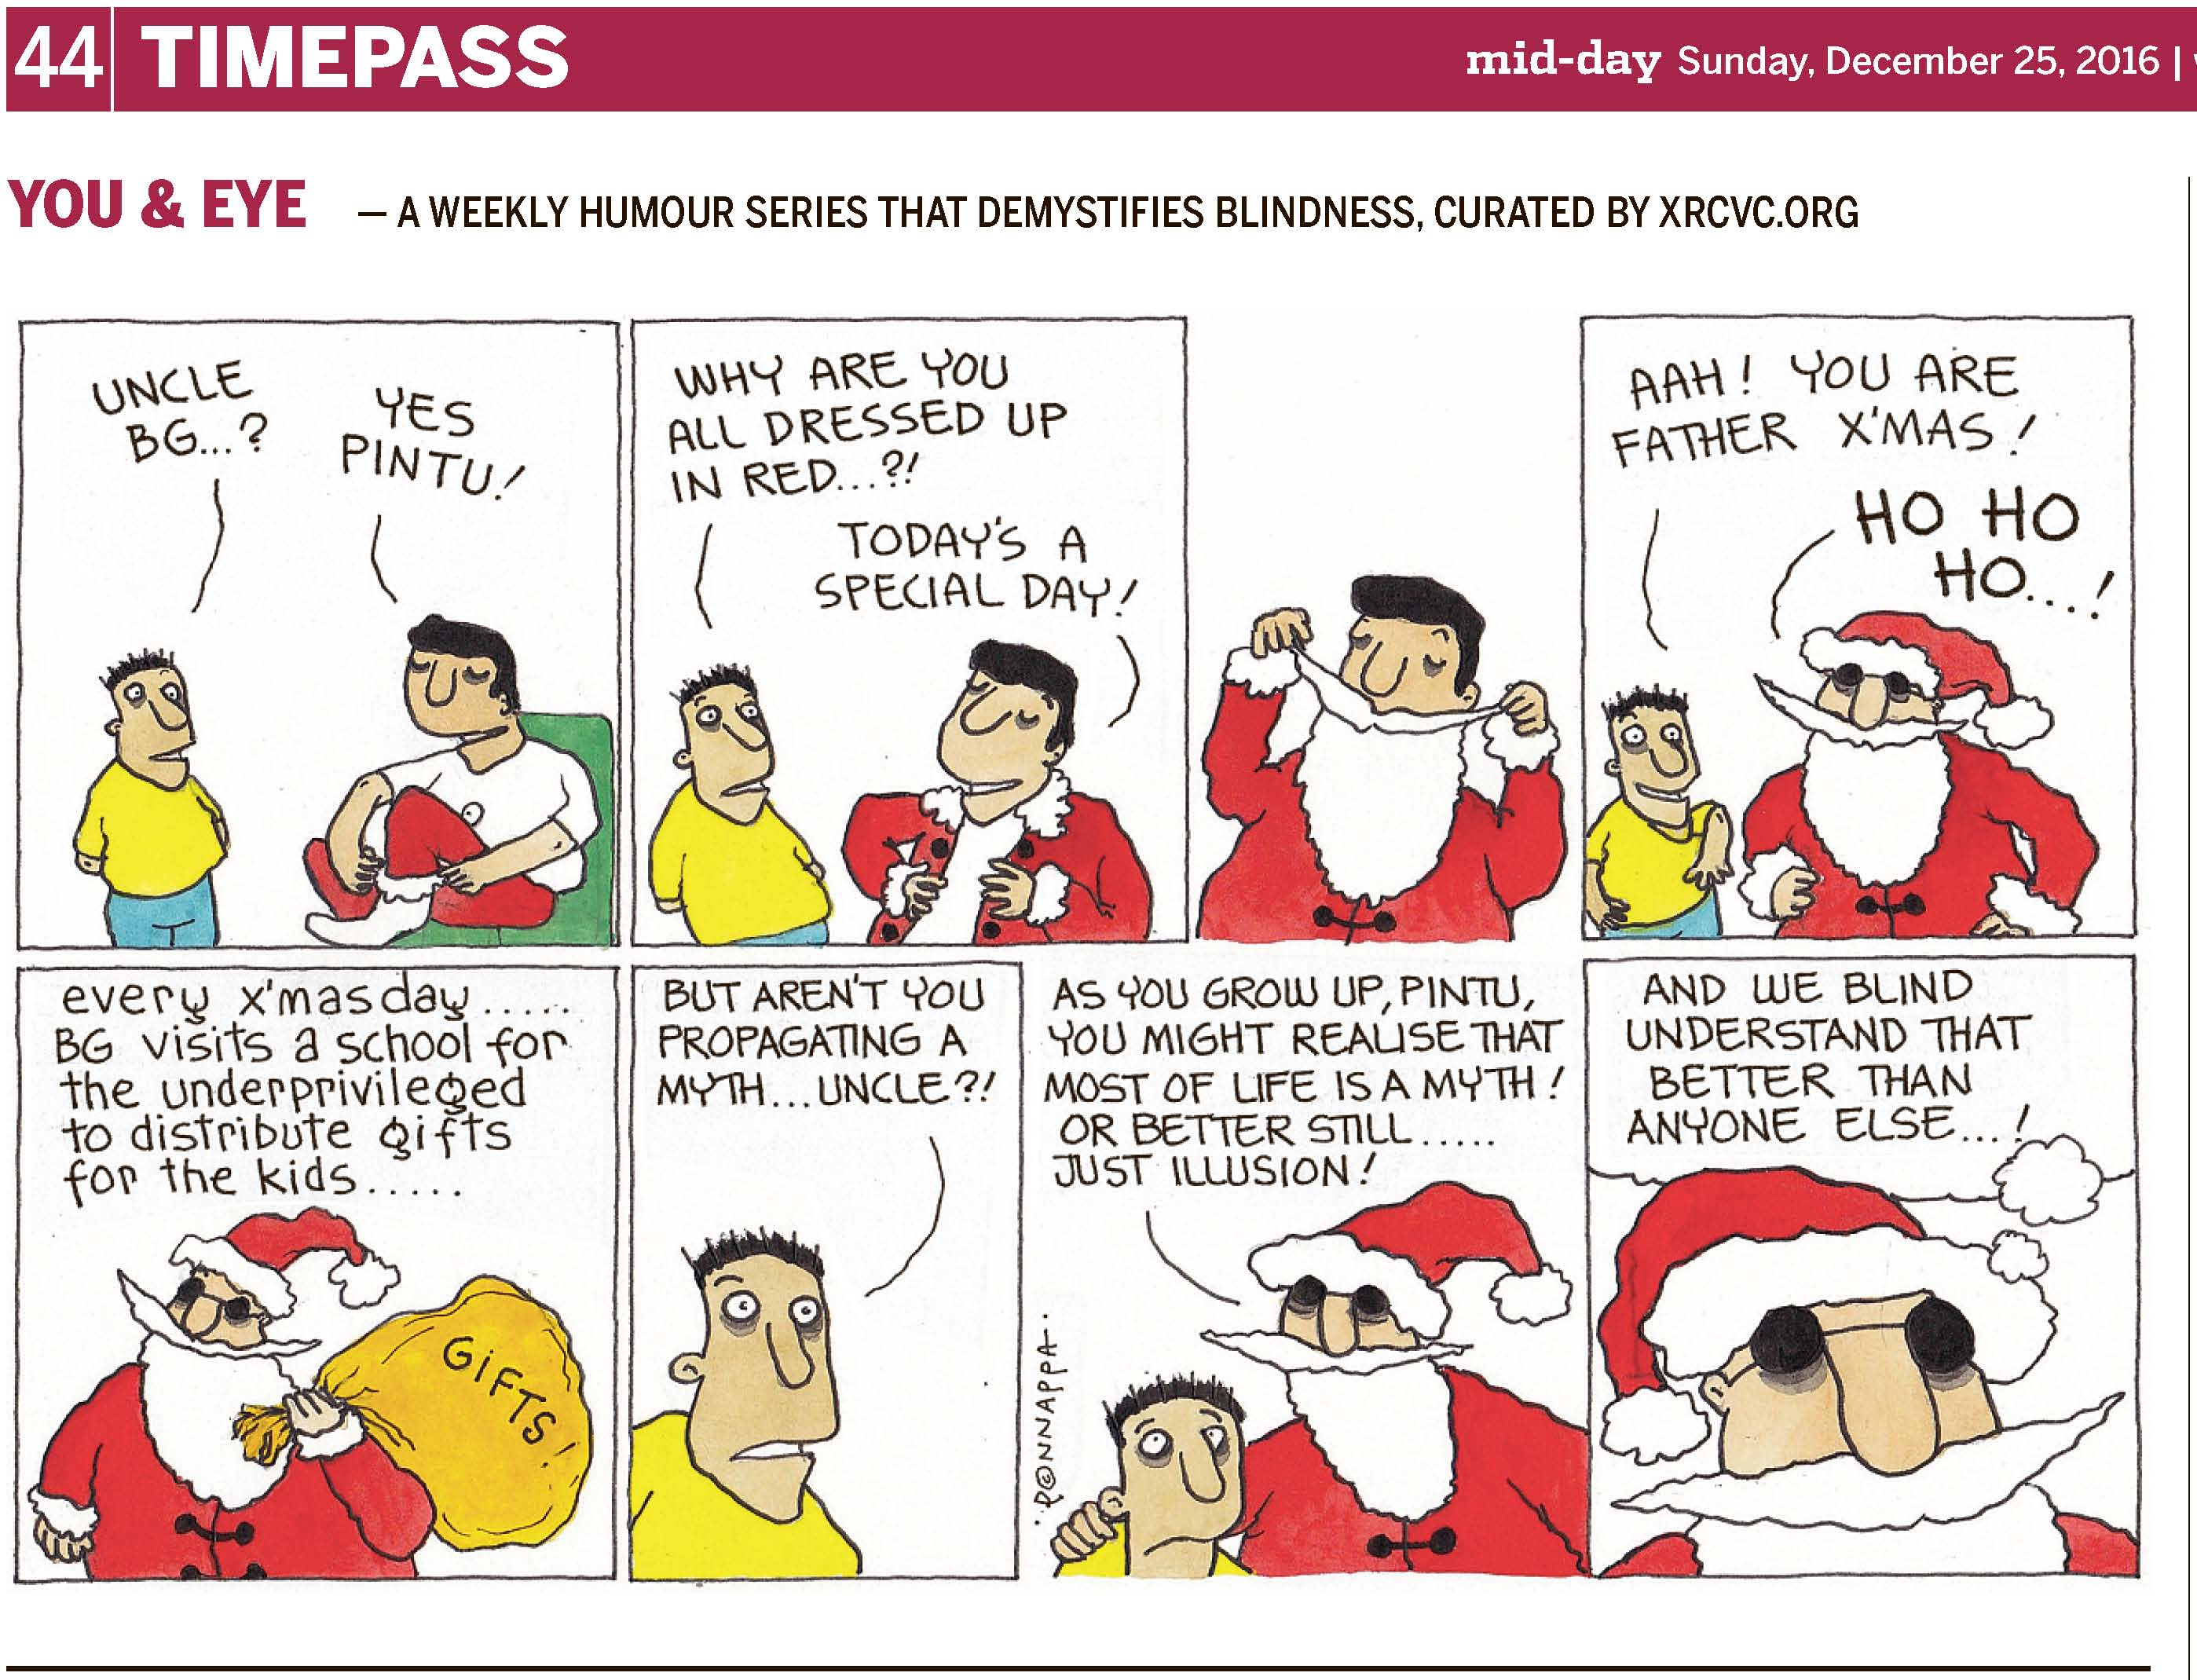 (top-left) 44 | TIMEPASS (top-right) mid-day Sunday, December 25, 2016 | YOU & EYE – A WEEKLY HUMOUR SERIES THAT DEMYSTIFIES BLINDNESS, CURATED BY XRCVC.ORG Image description: A cartoon strip with 8 frames… Frame 1: